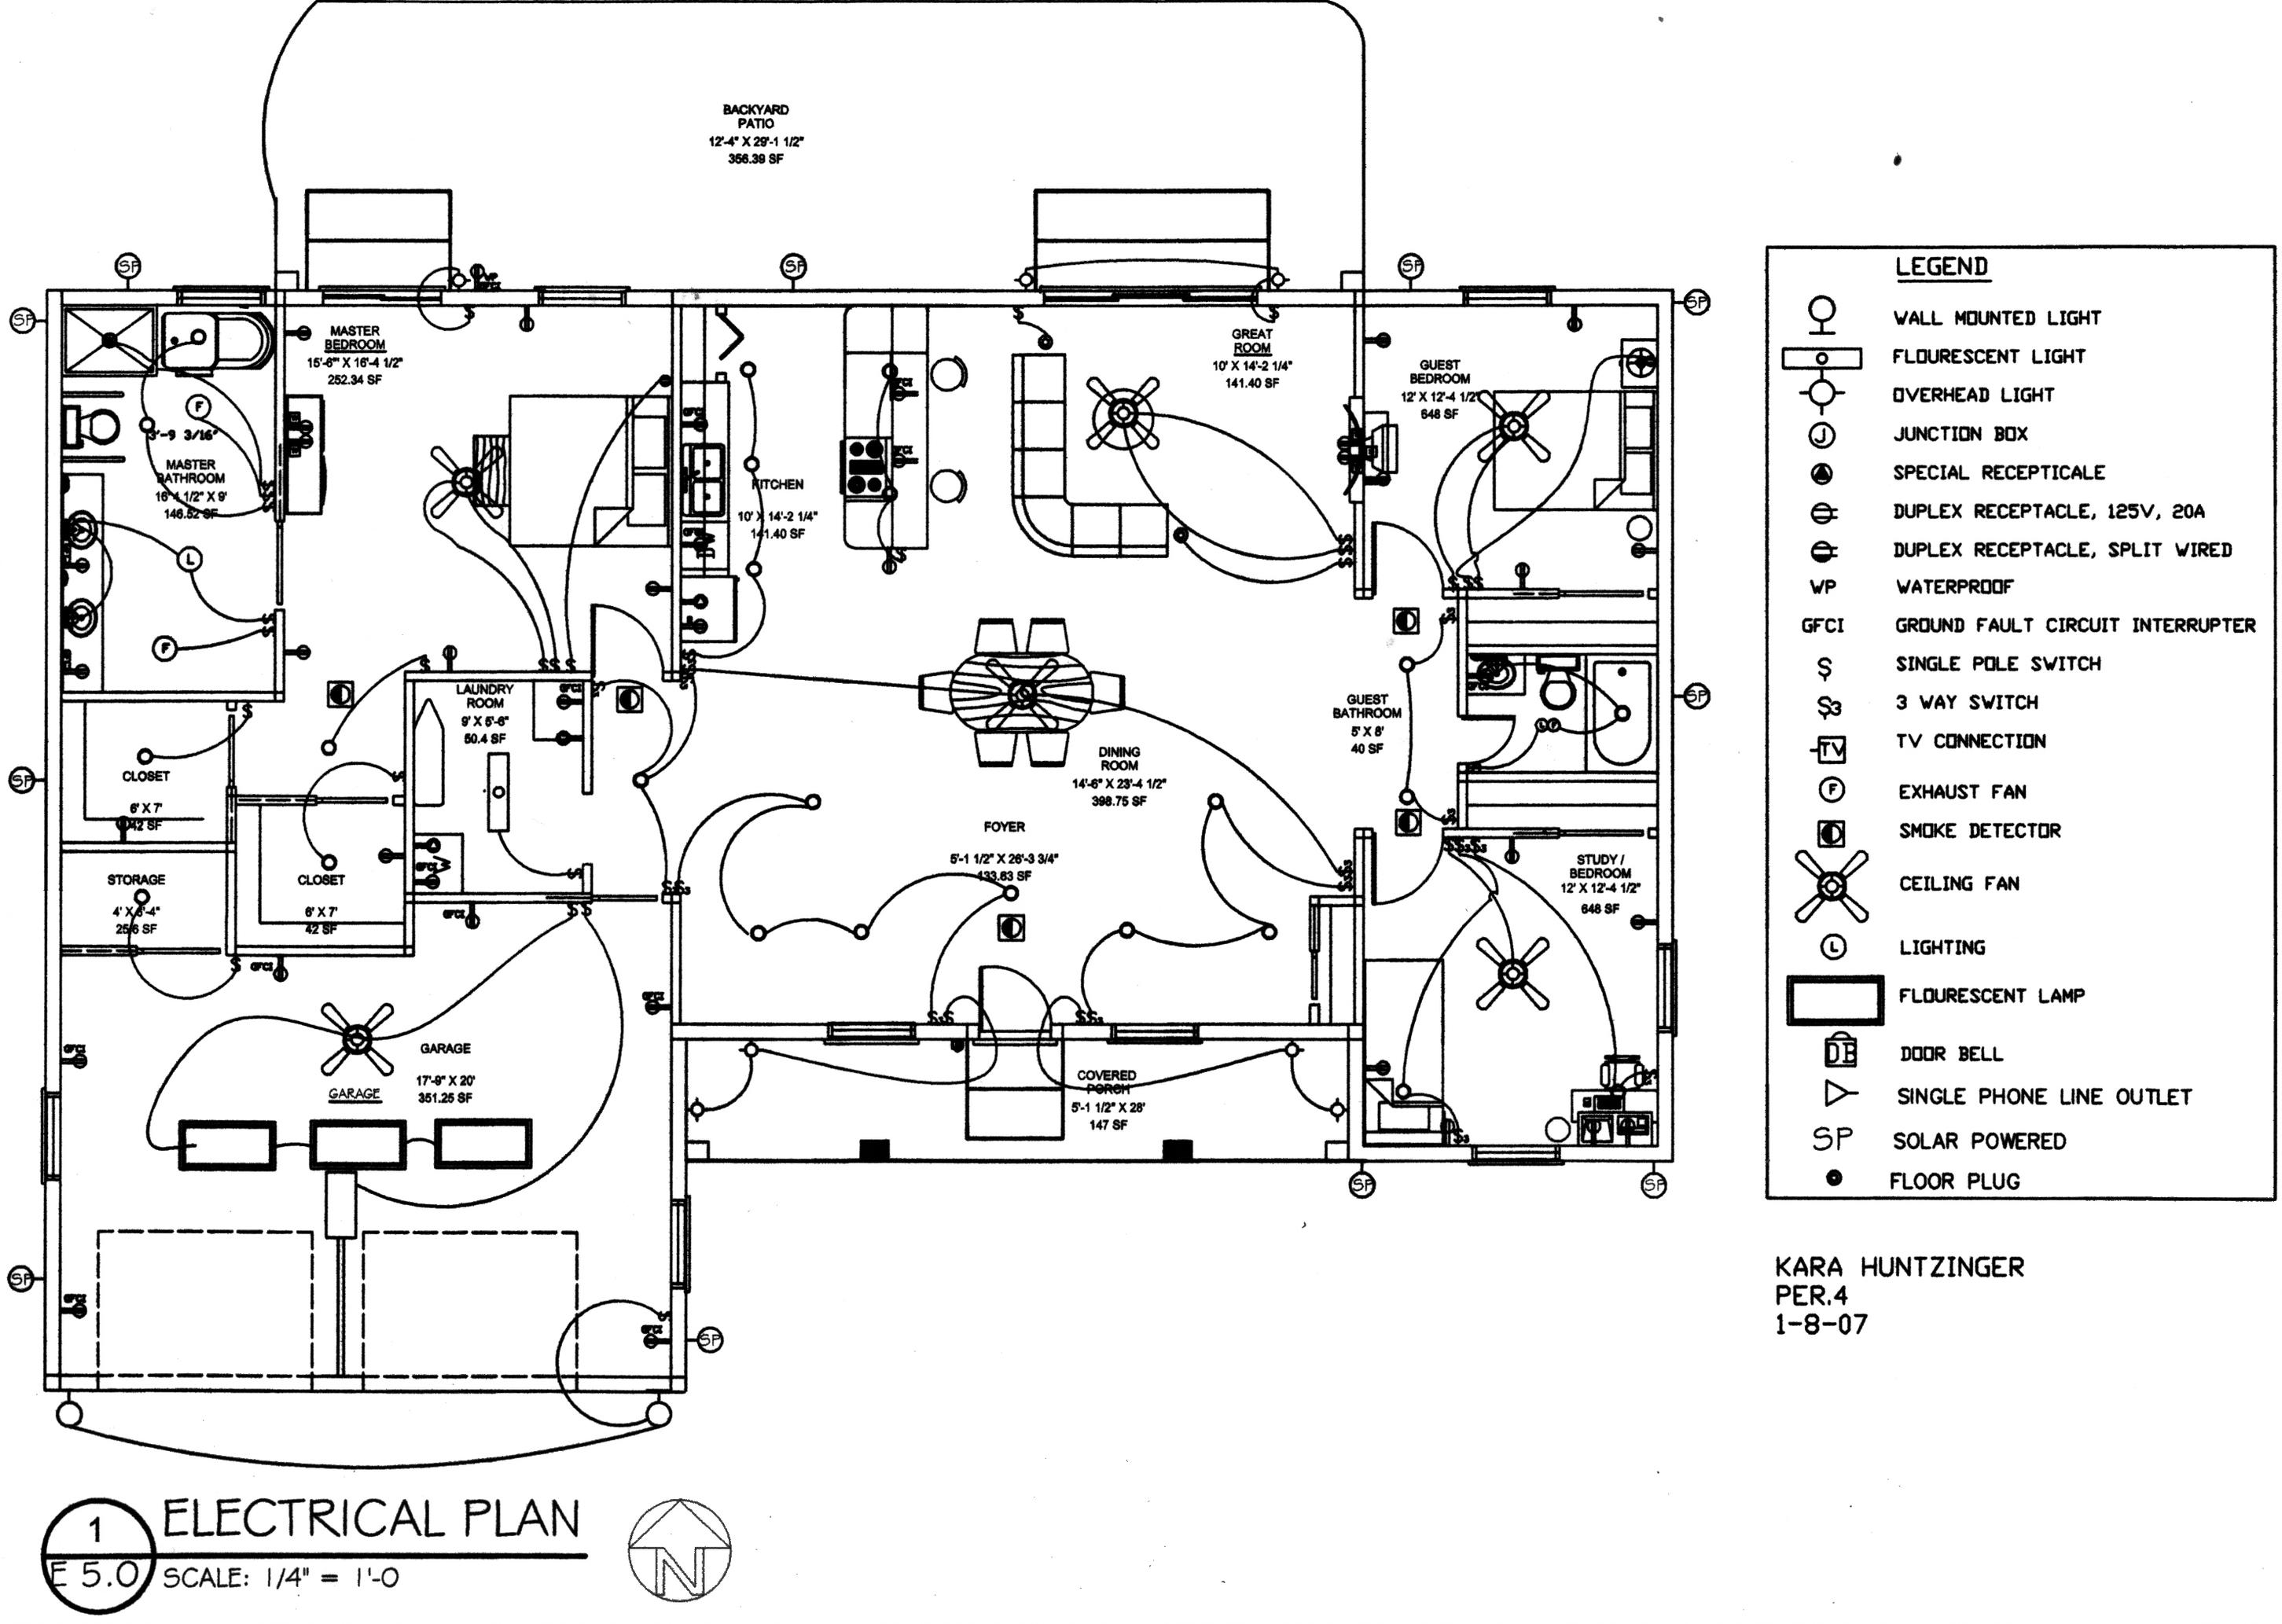 Electrical Plan On Autocad Online Manuual Of Wiring Diagram Symbols Dwg Library Rh 13 Insidestralsund De